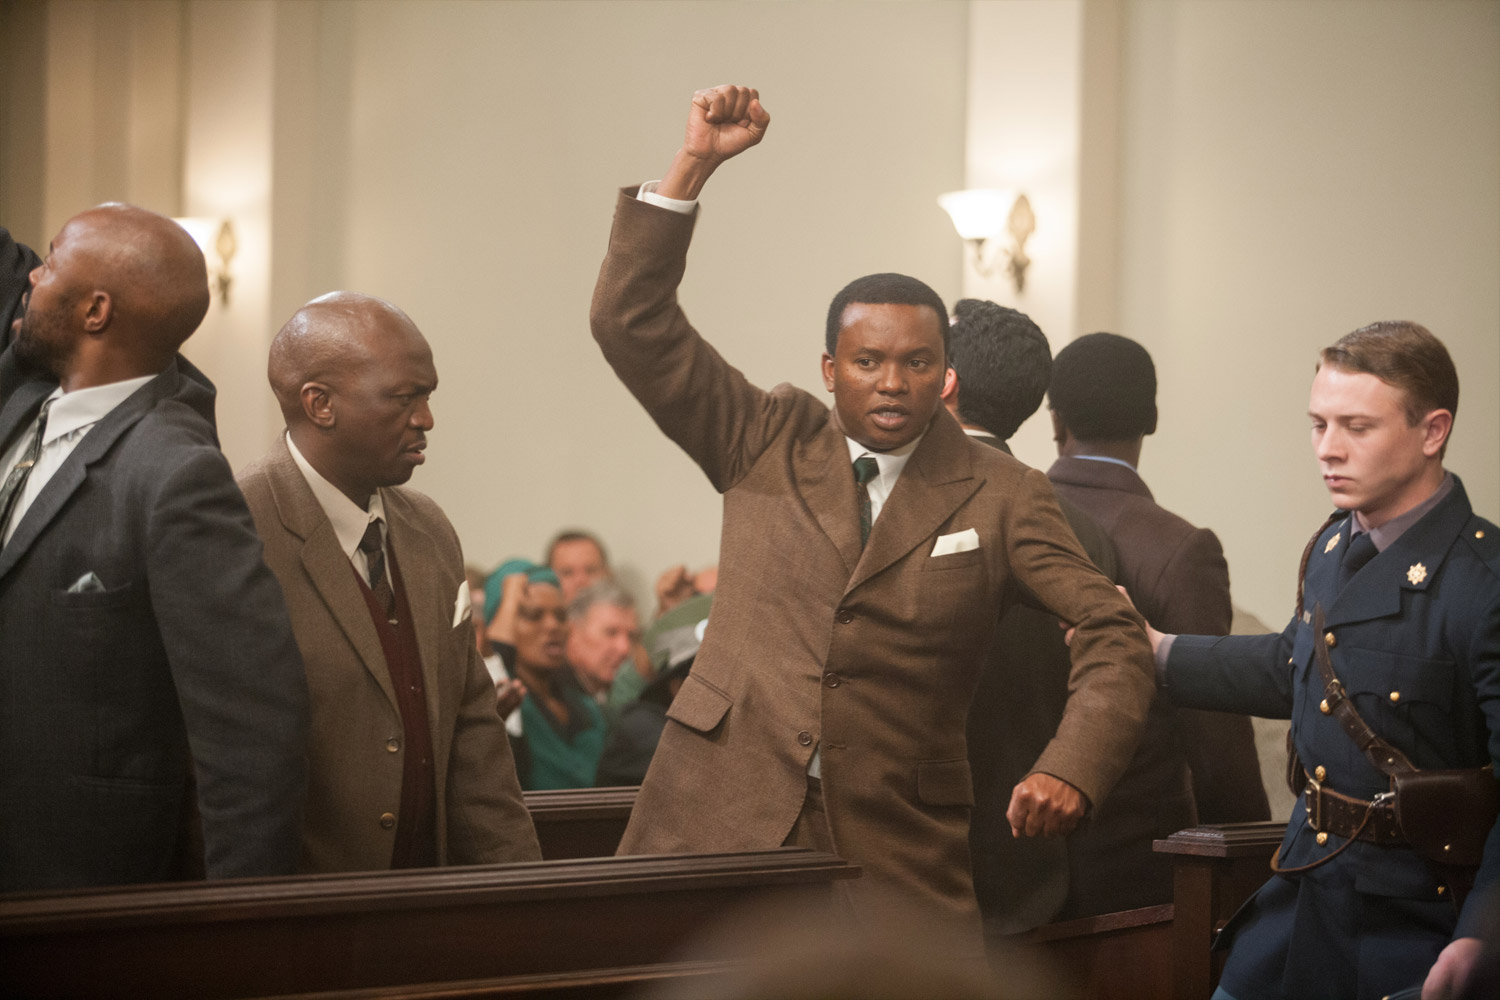 Mandela - Long Walk To Freedom 36